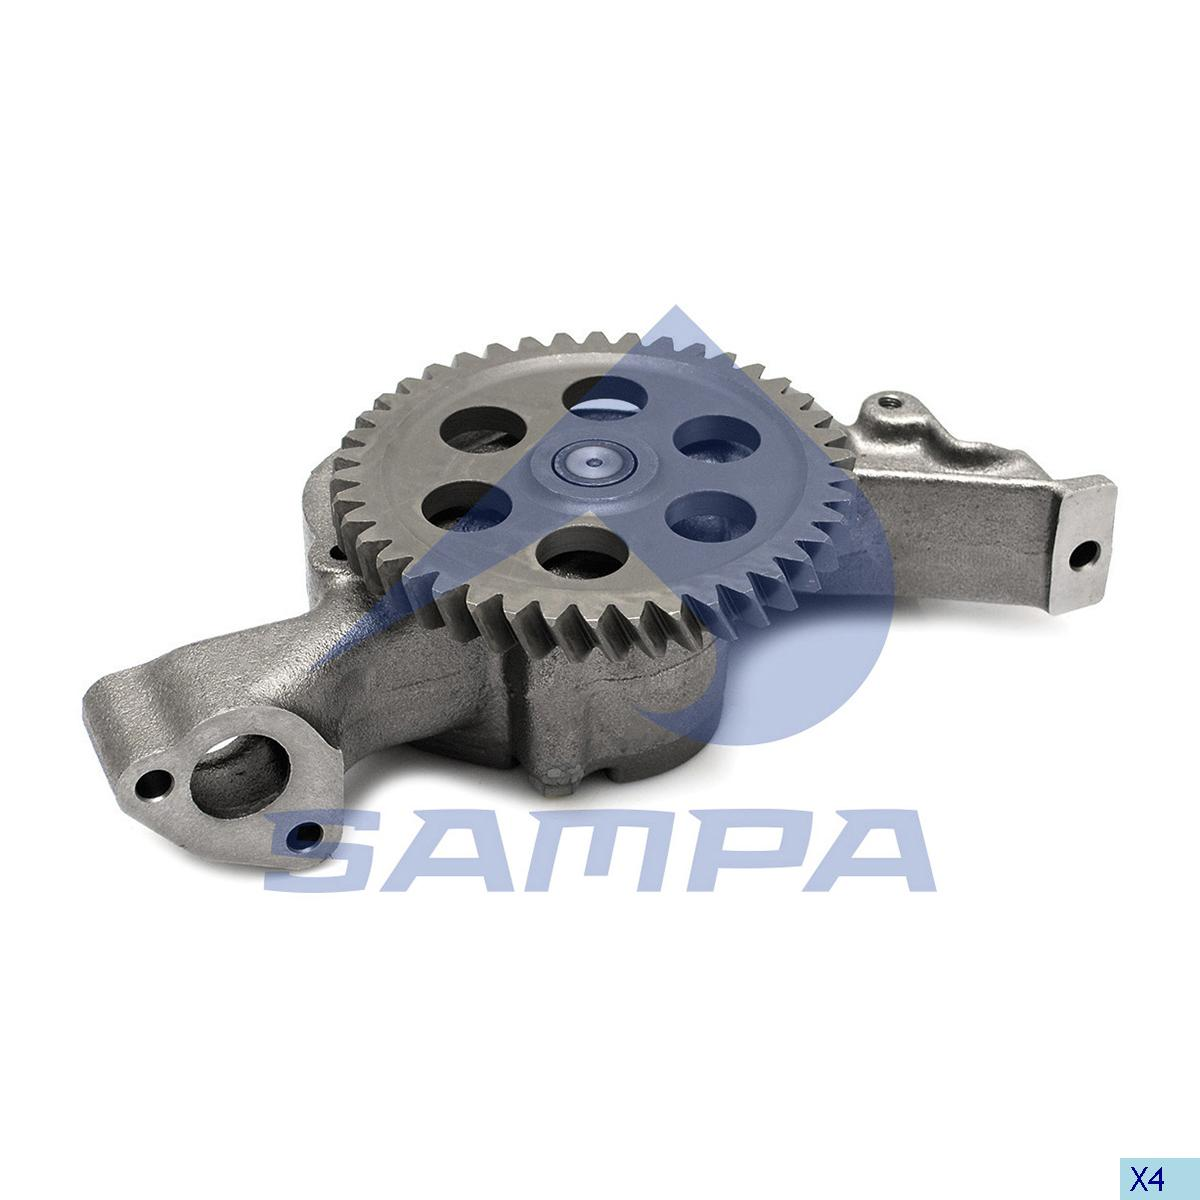 Oil Pump, Mercedes, Gear Box